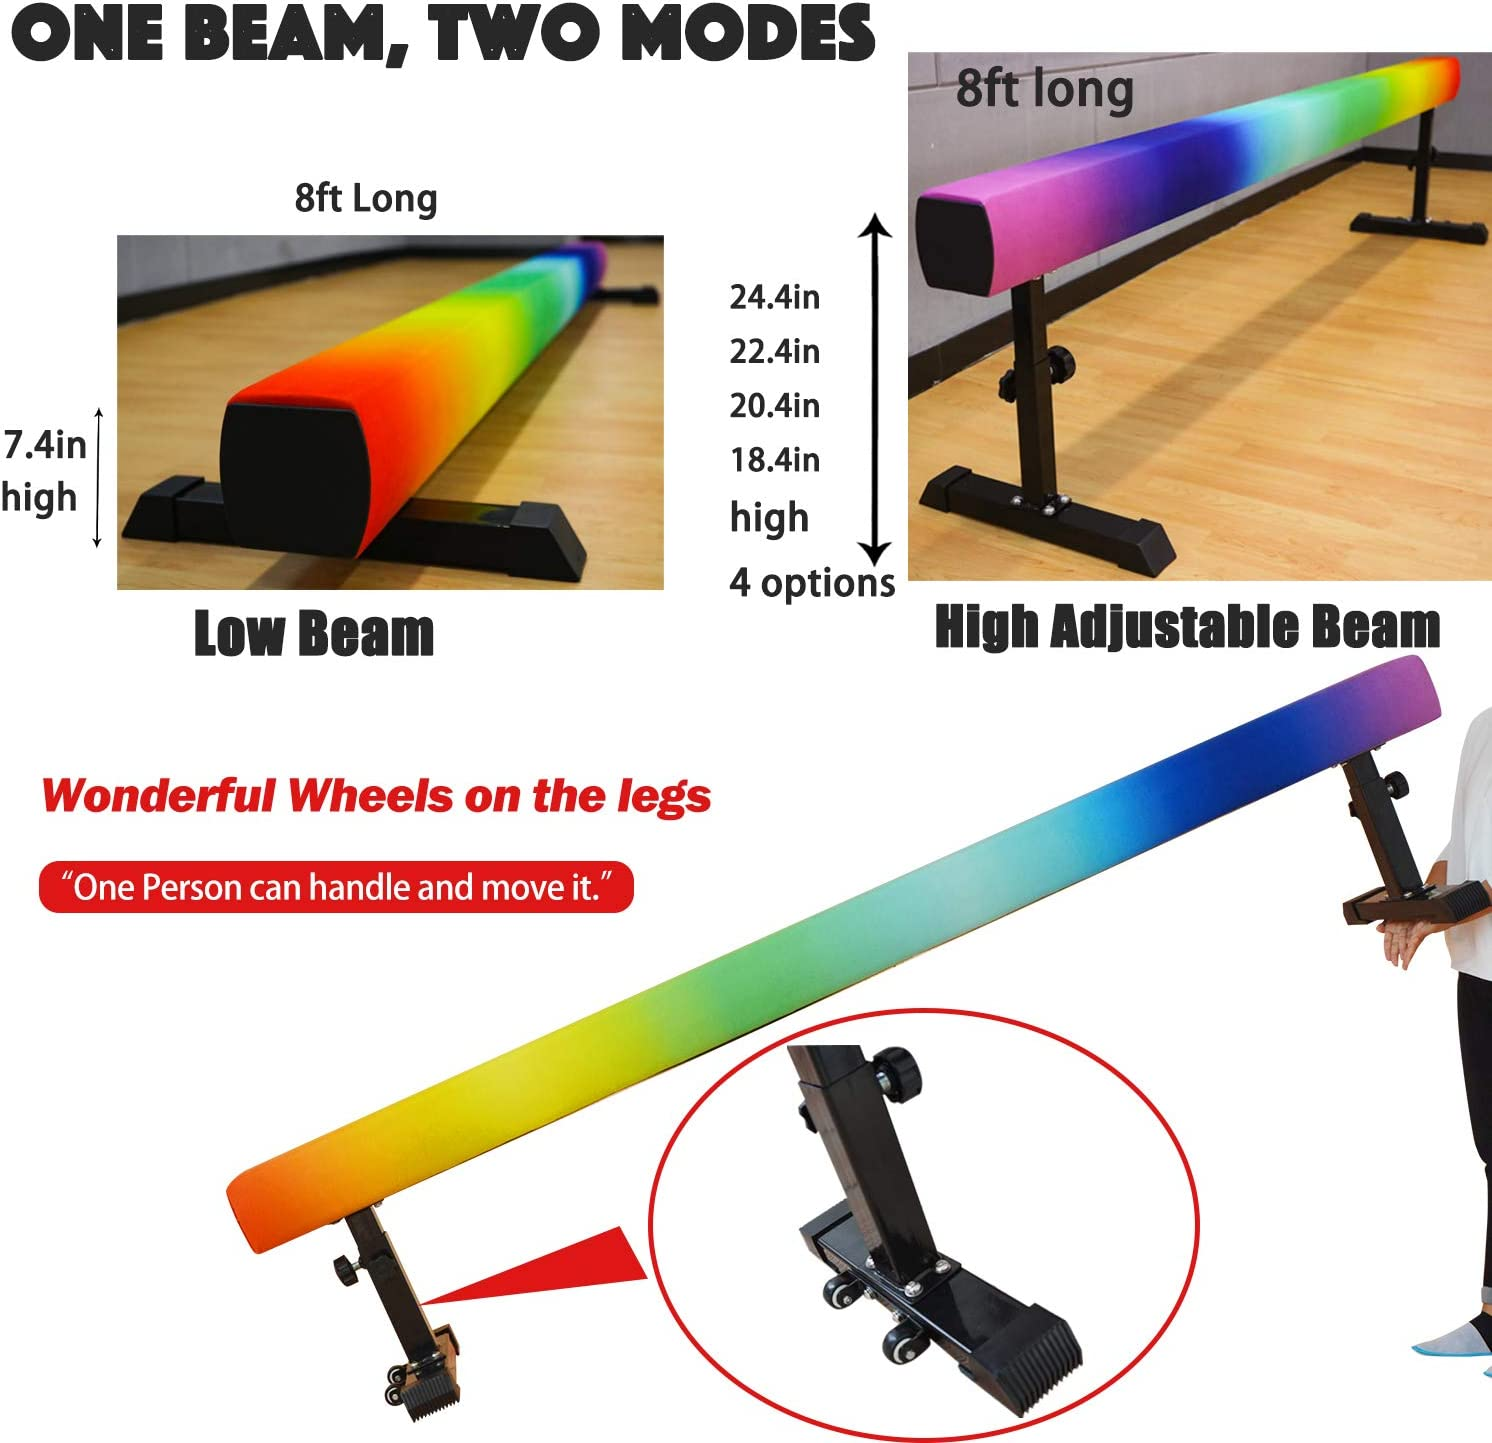 8FT High /& Low Club Level Gymnastics Competition Style Training Beam with Legs /& Wheels Bonus Anti-dust Cover PreGymnastic Adjustable Balance Beam